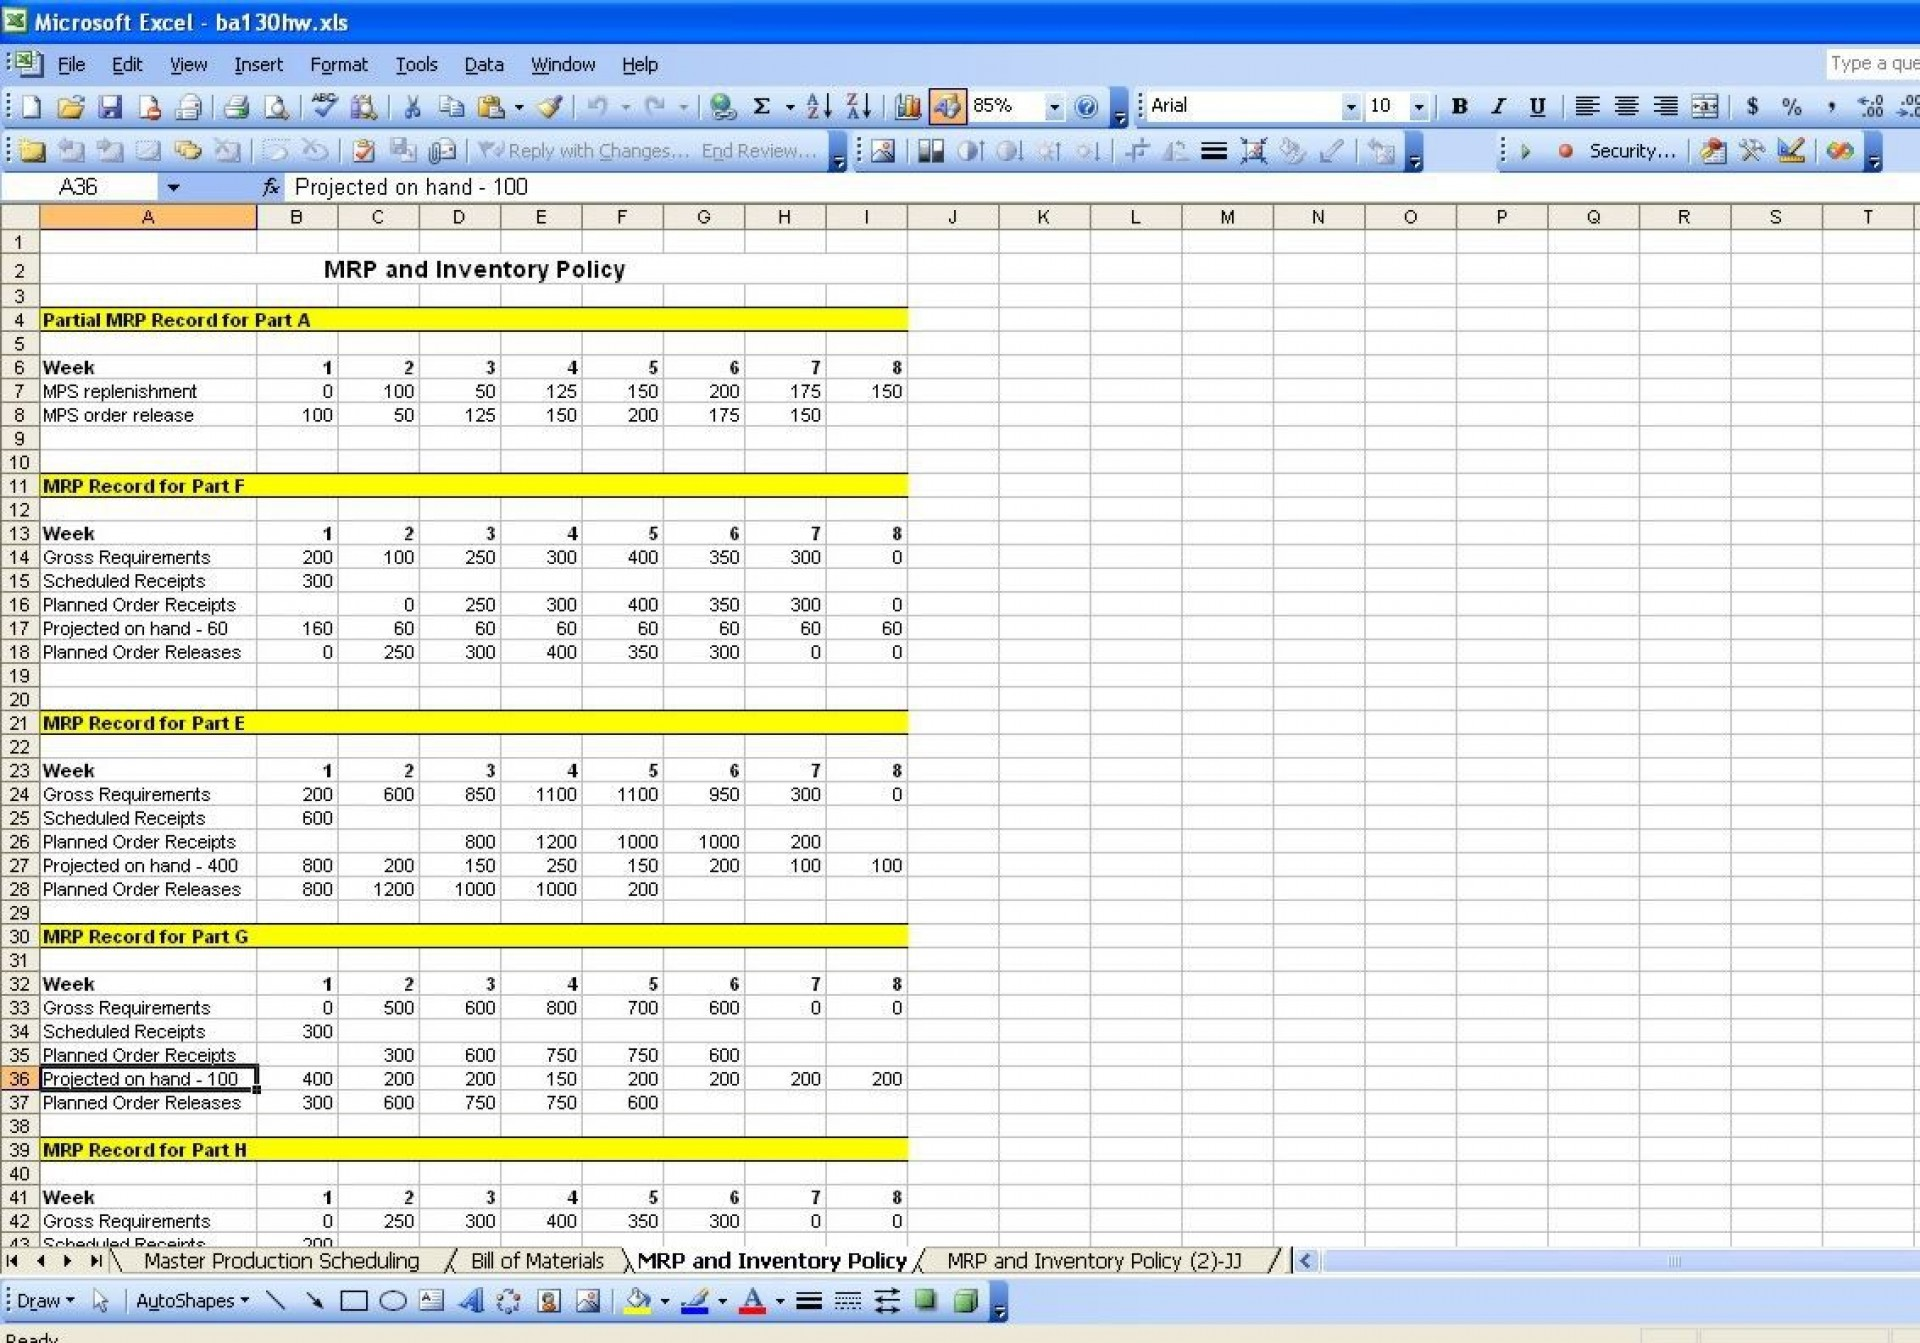 007 Unusual Production Schedule Template Excel High Resolution  Planning Sheet Master1920